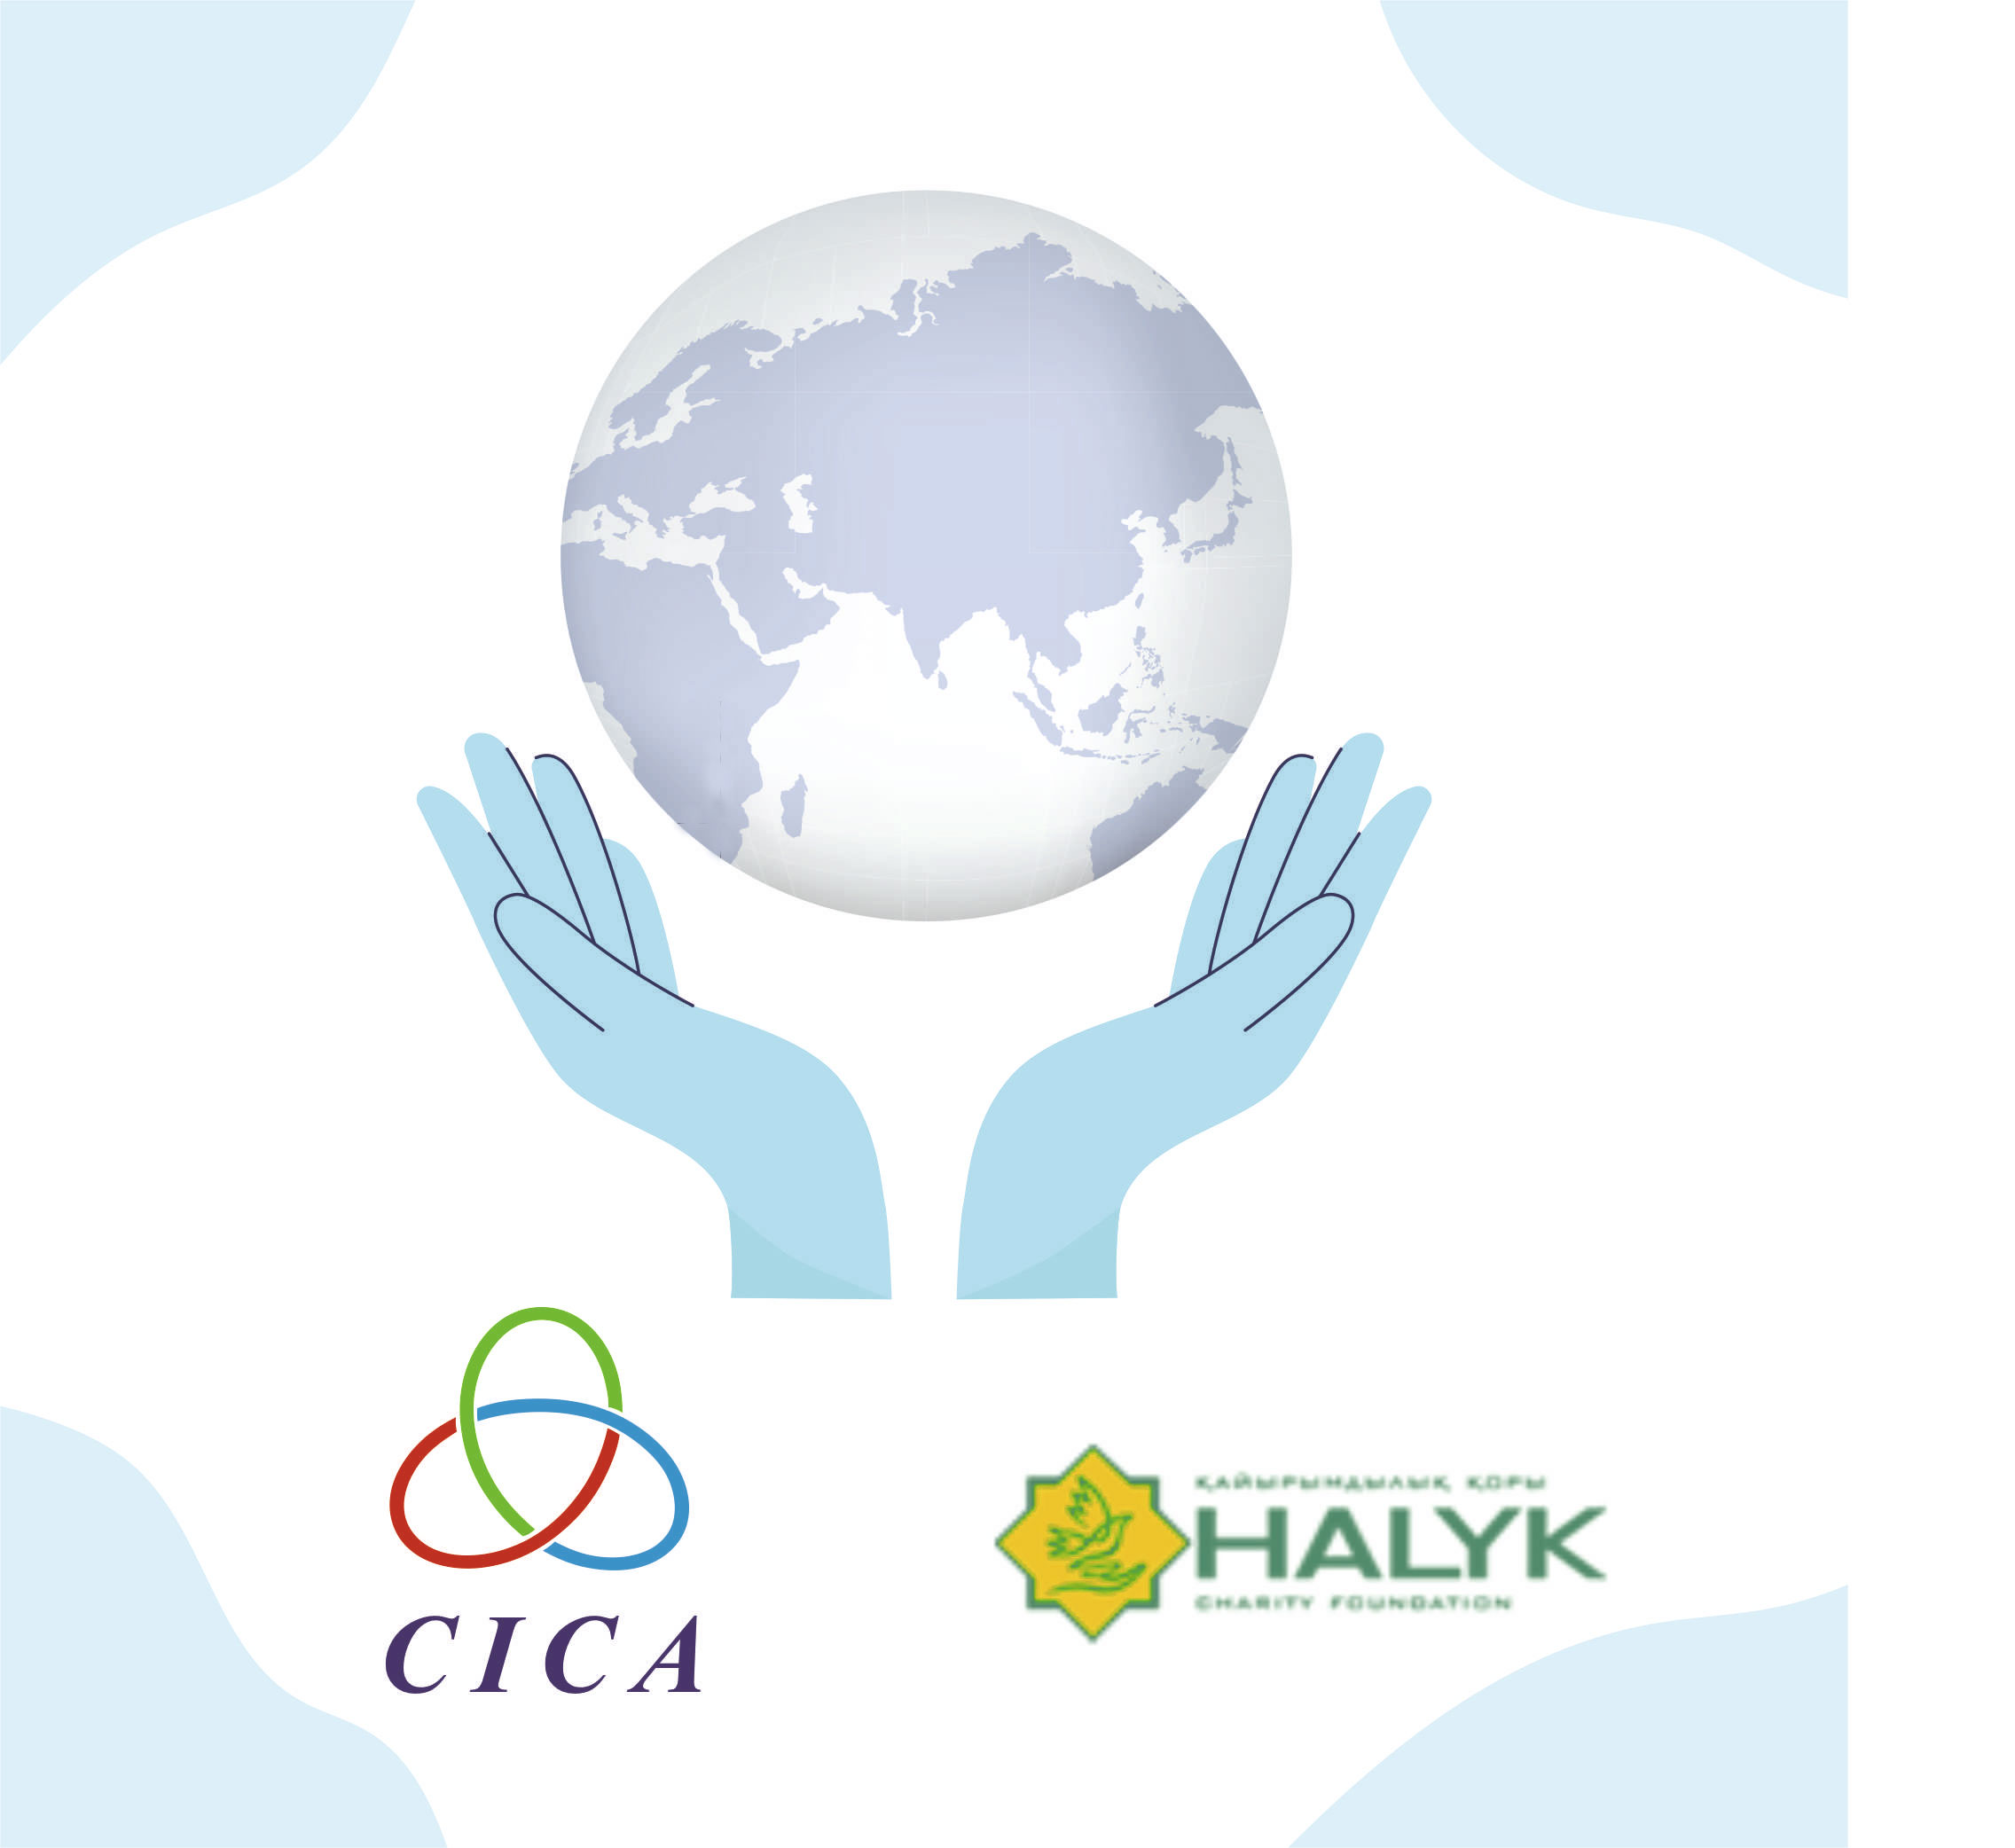 """The Halyk Charity Foundation expressed gratitude to the CICA Secretariat for its support and participation in the provision of humanitarian assistance to a number of Member States in their fight against the COVID-19 pandemic within the framework of the Confidence Building Measure """"Epidemiological Safety, Public Health and Pharmaceuticals""""."""